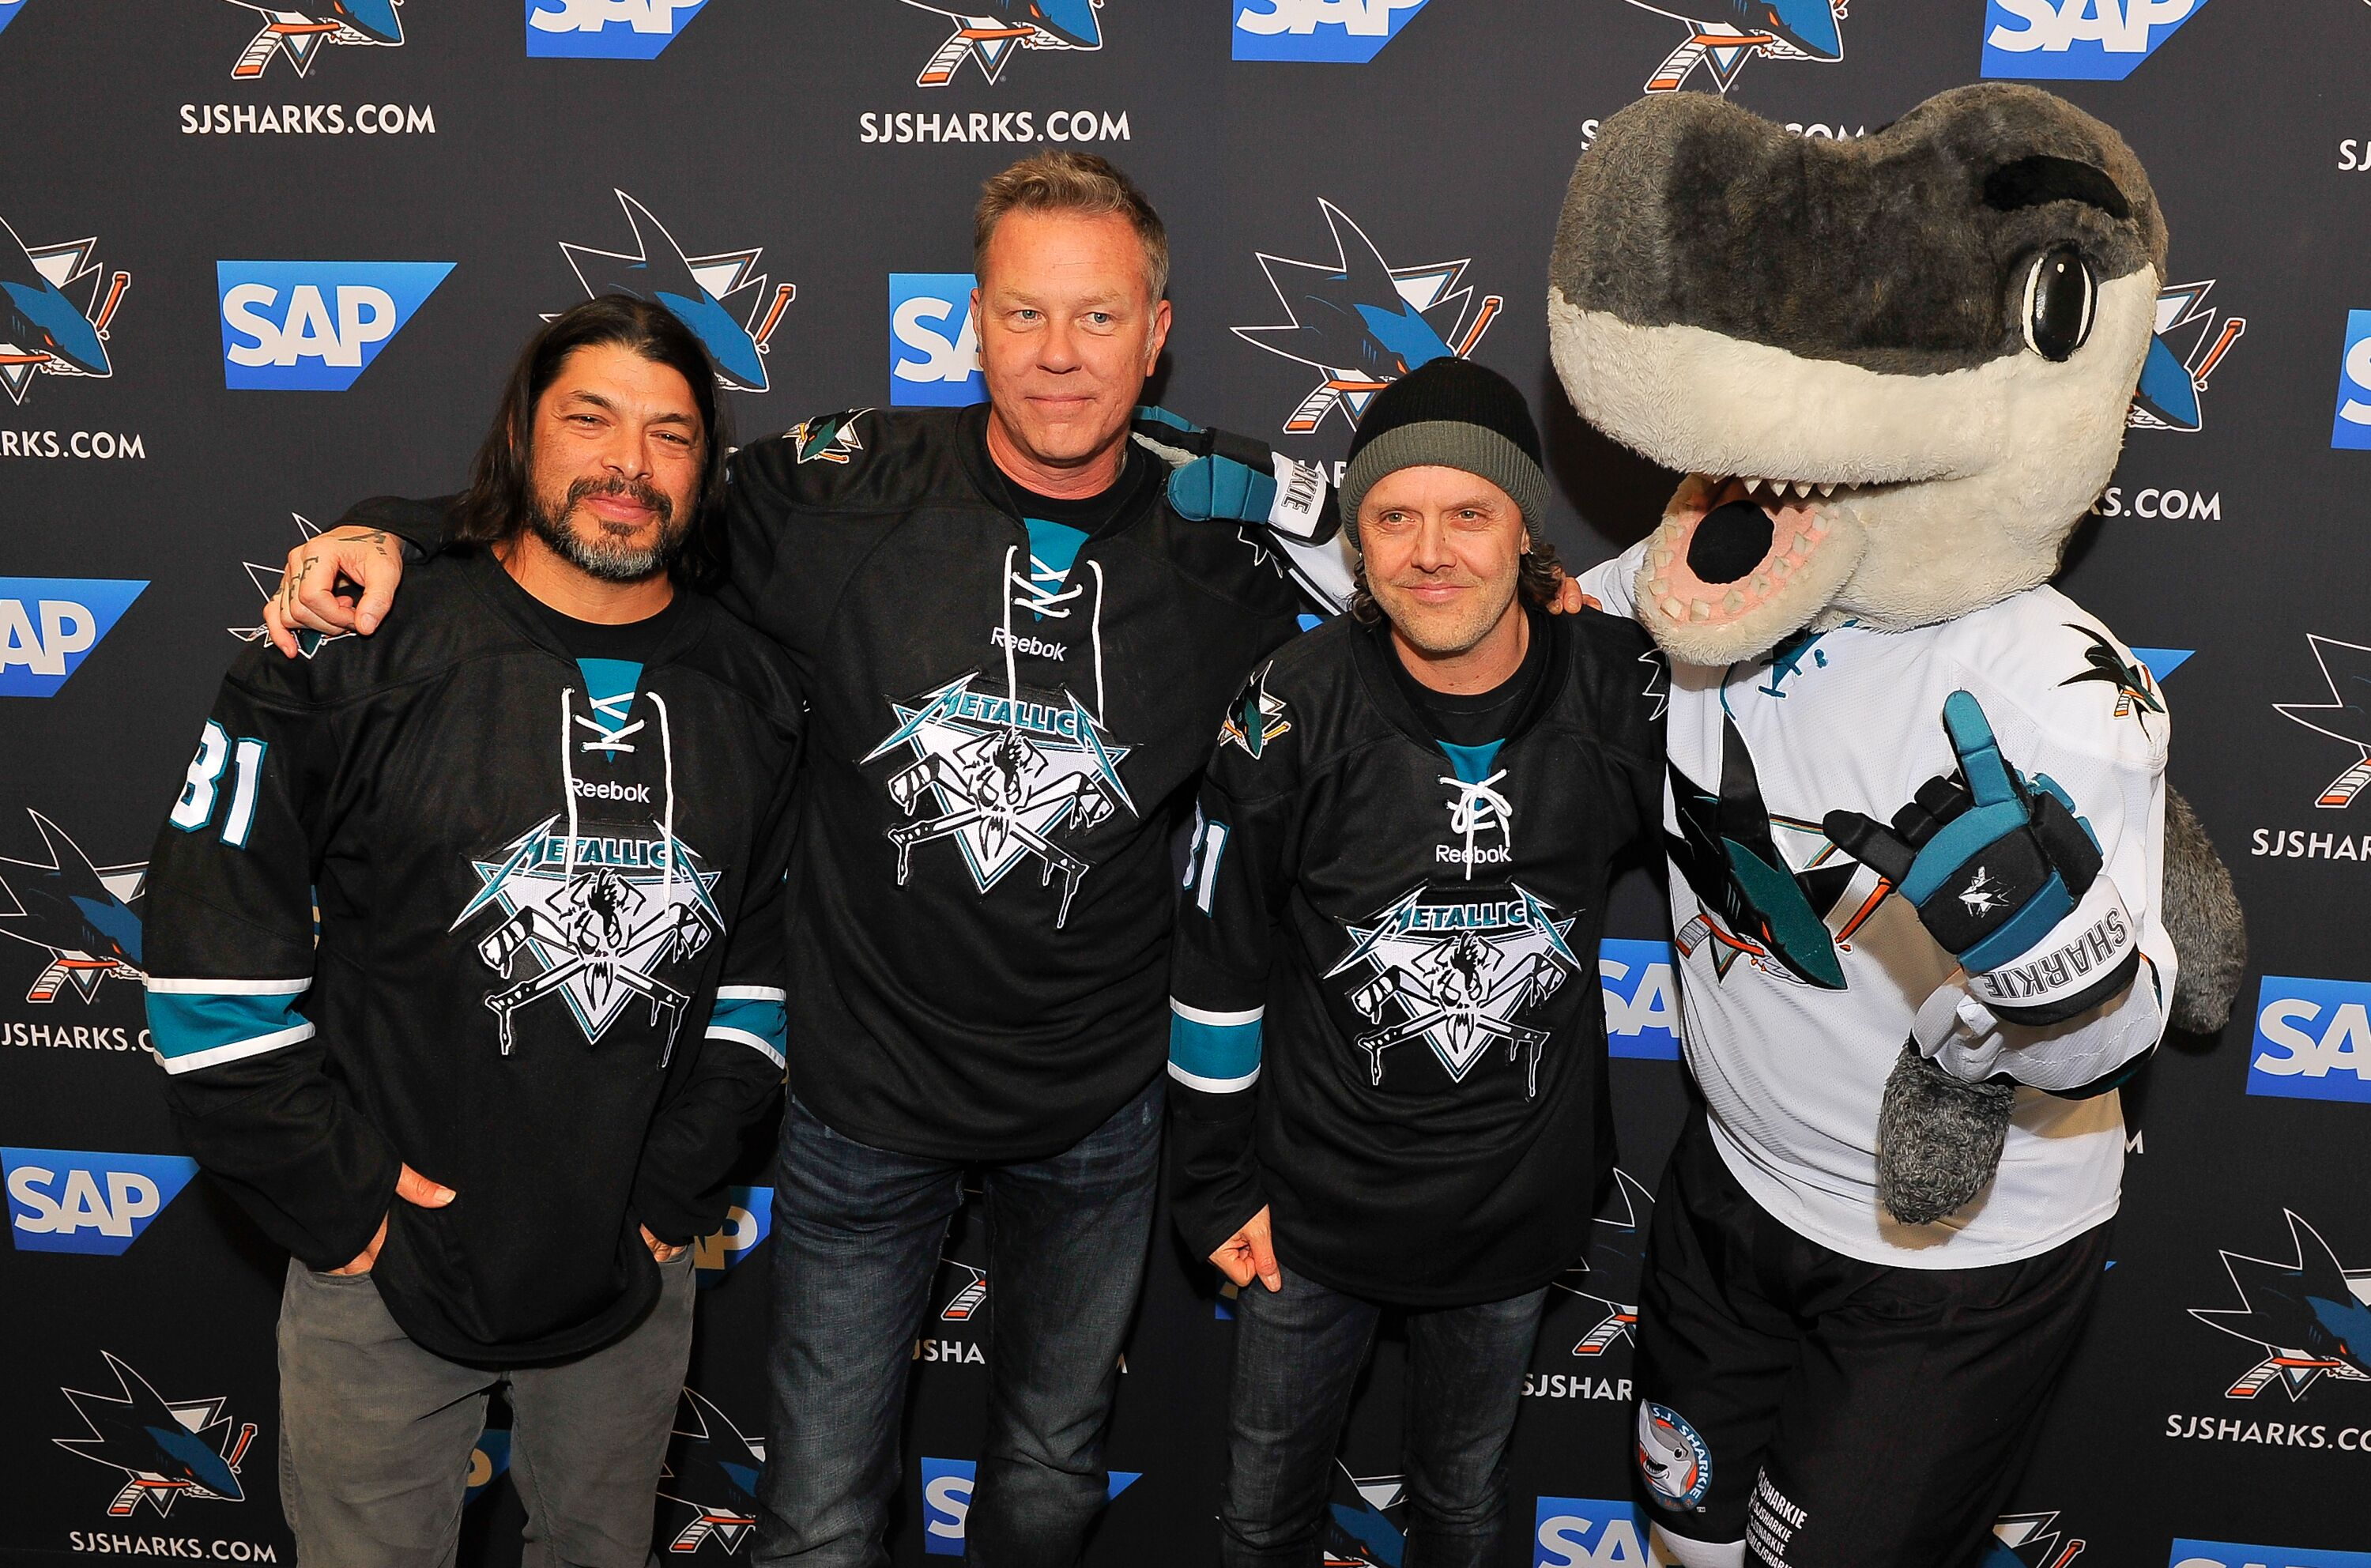 James Hetfield Was Pumped To Greet Sharks Before Game 6